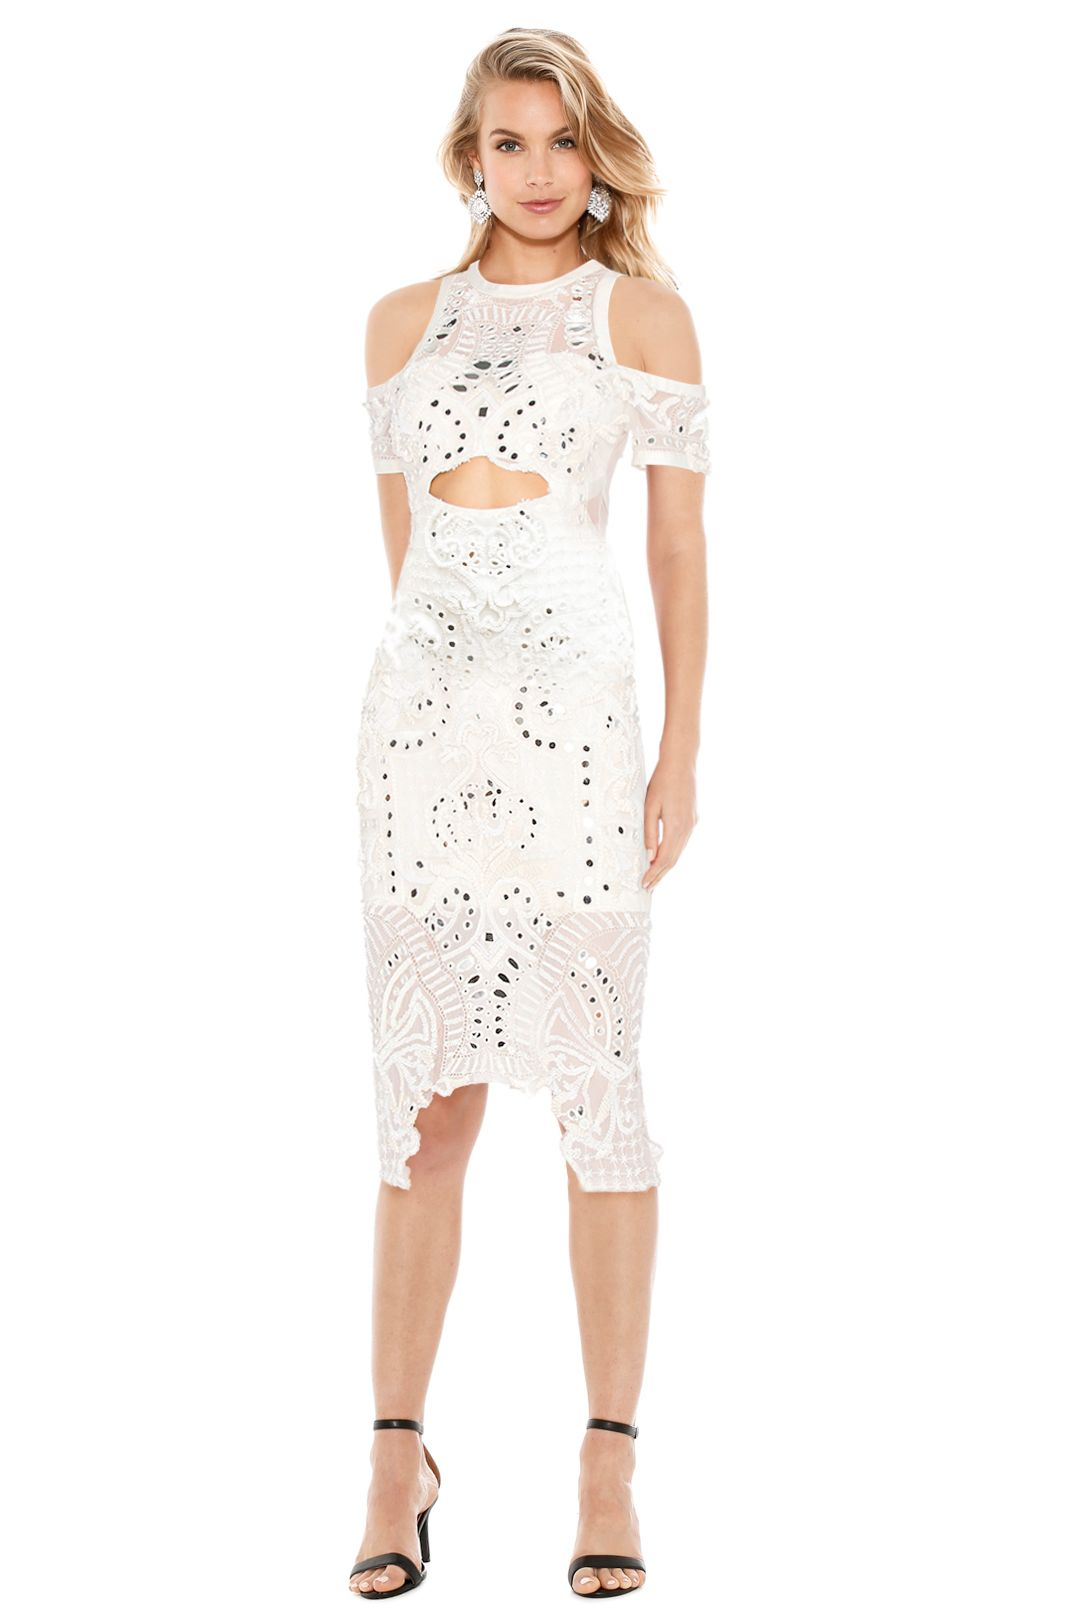 Thurley - Wild Heart Dress - Ivory - Front